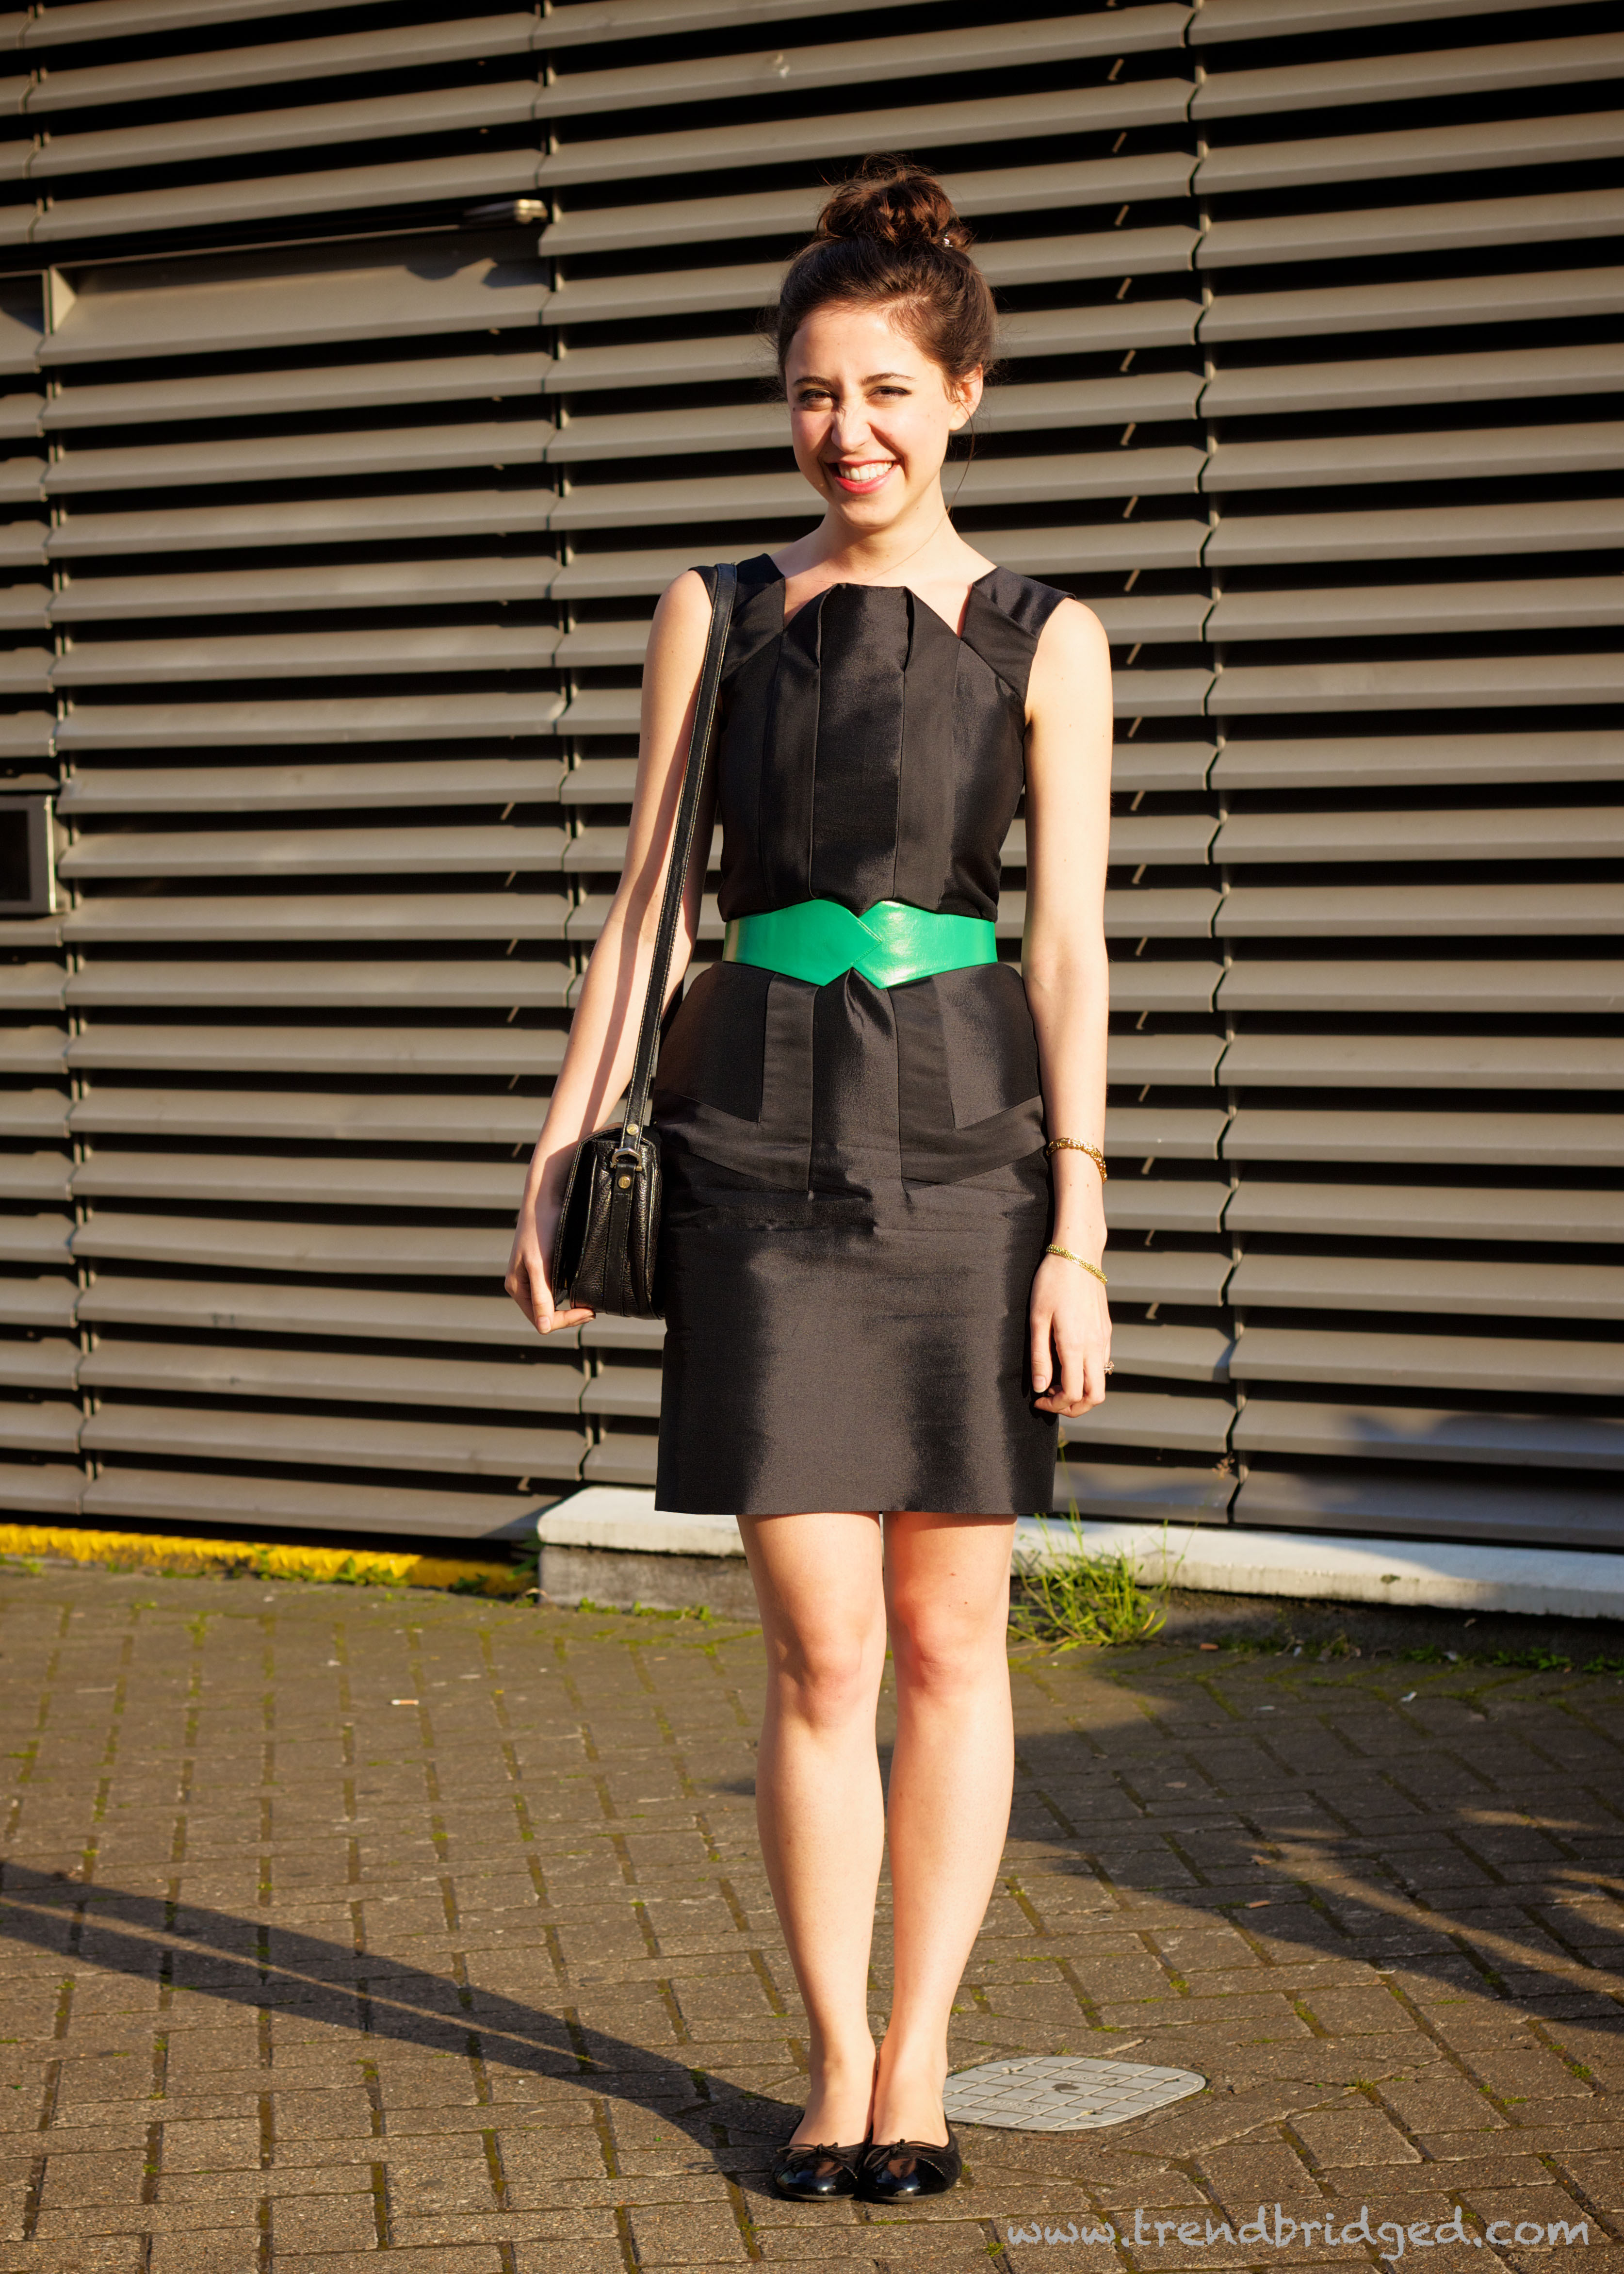 Green Skirt, Maxi Skirt, Tate Modern, Green an Black, London Fashion, Green belt, Origami detailing